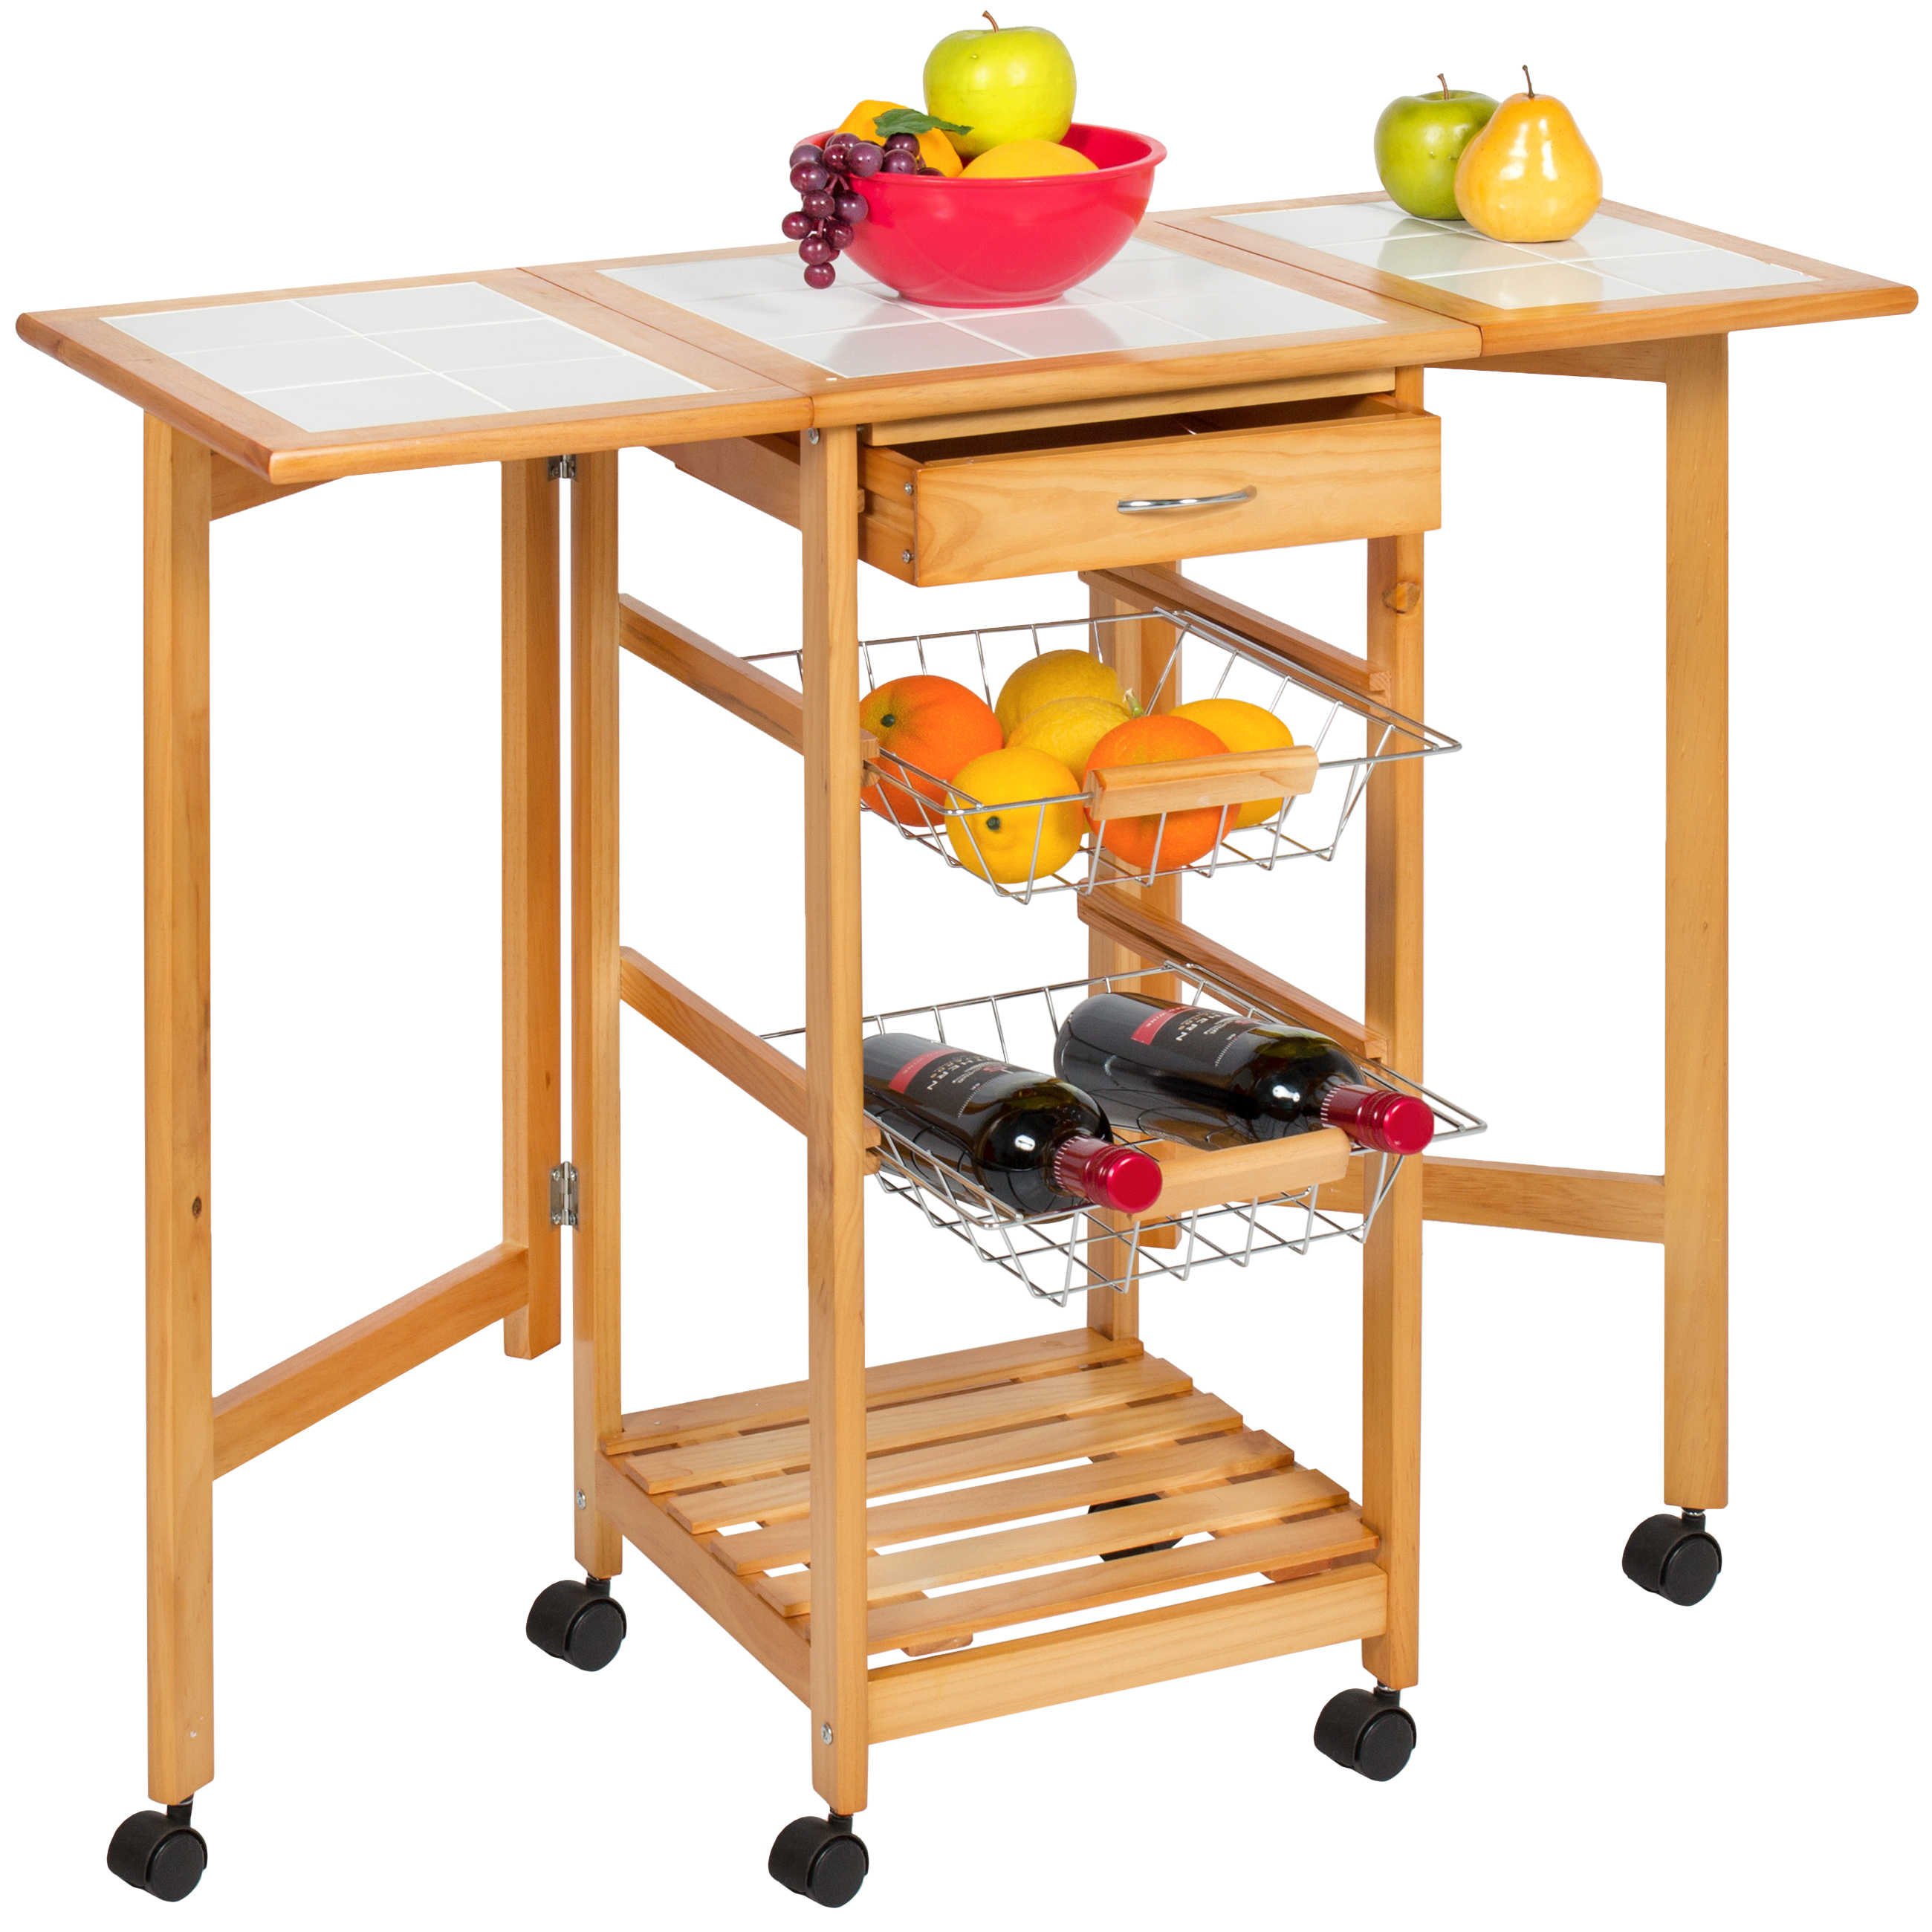 Kitchen Island Bench For Sale Ebay: Portable Folding Tile Top Drop Leaf Kitchen Island Cart